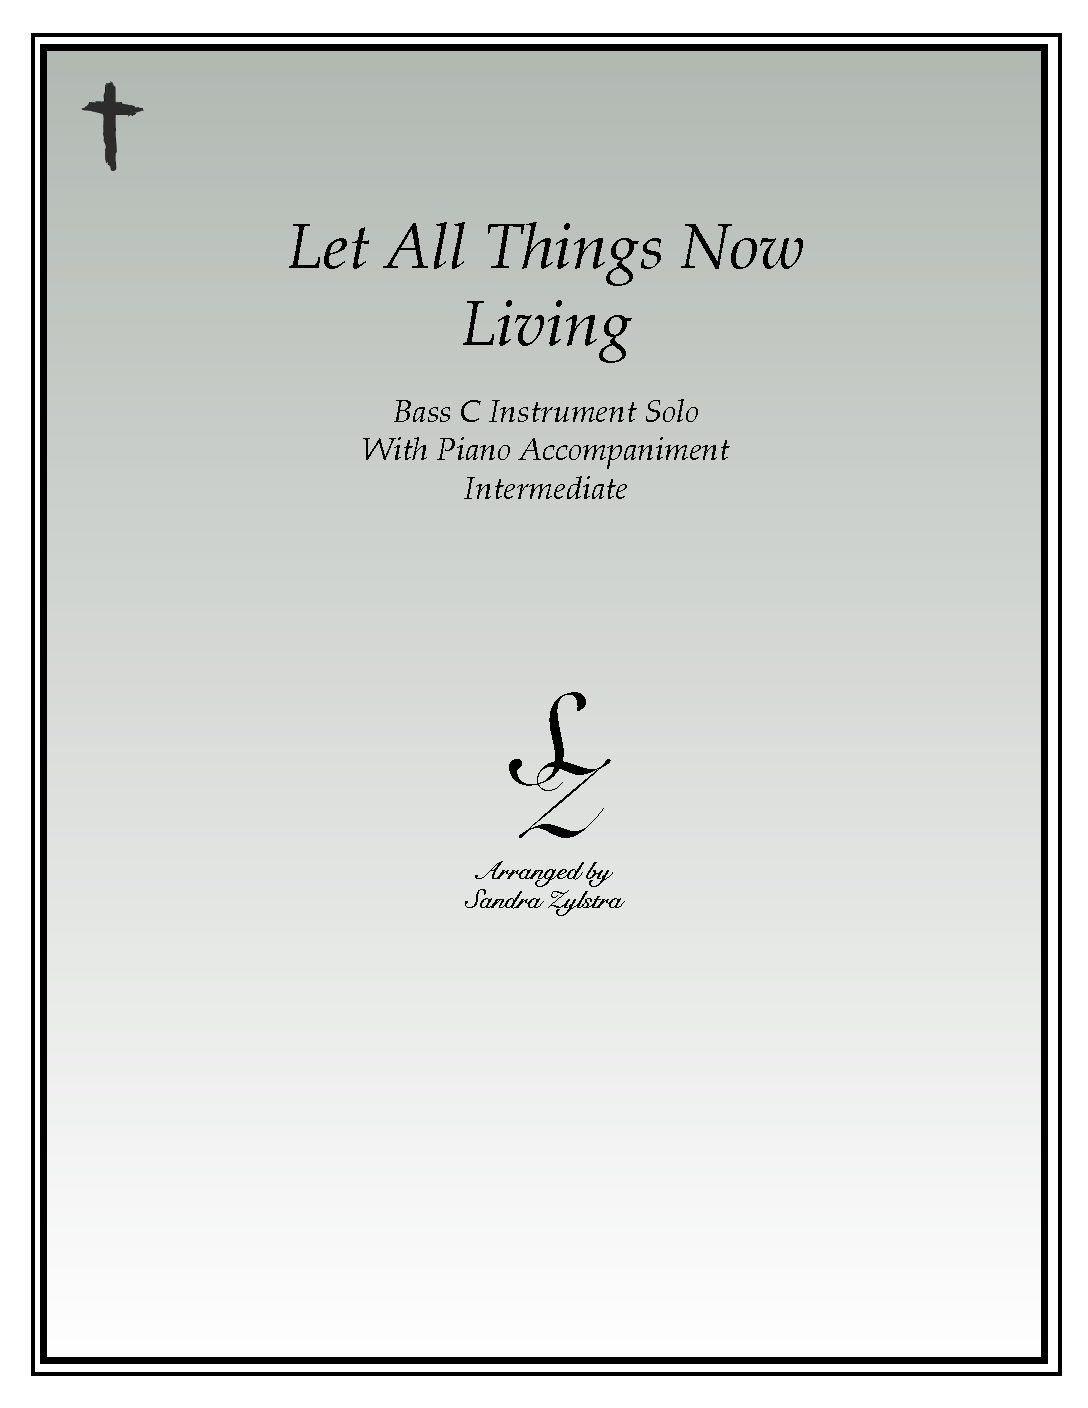 Let All Things Now Living -Bass C Instrument Solo